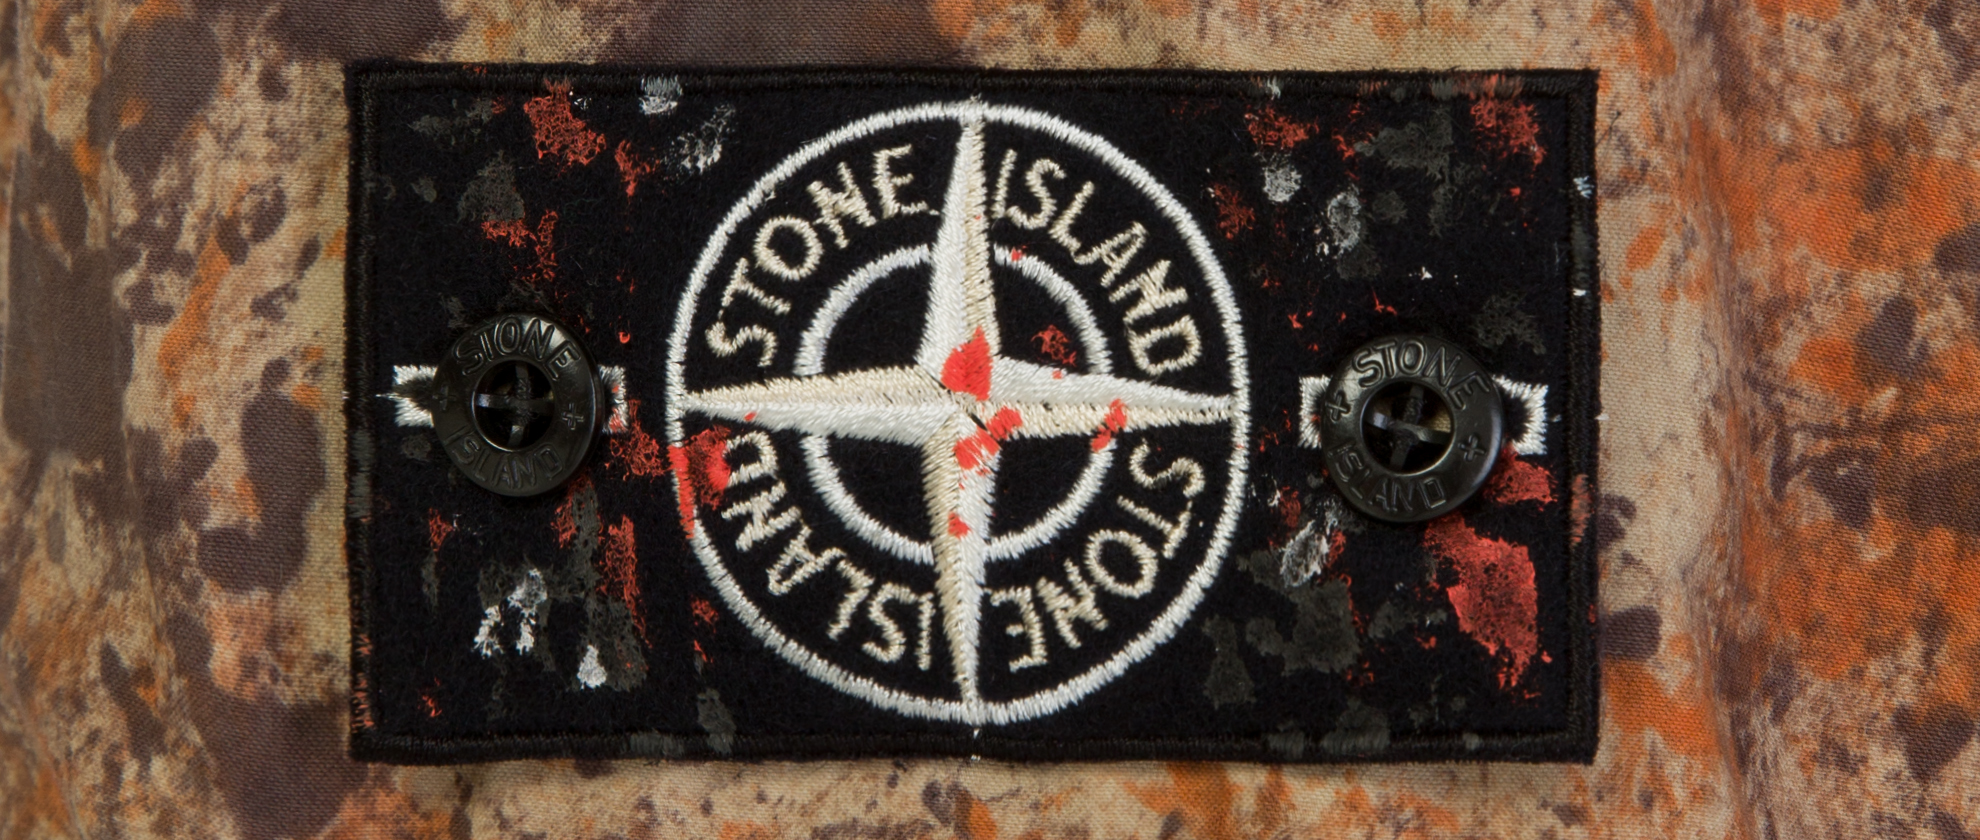 Stone Island Limited Edition Camouflage Paintball Collection In-Store and Online Now!